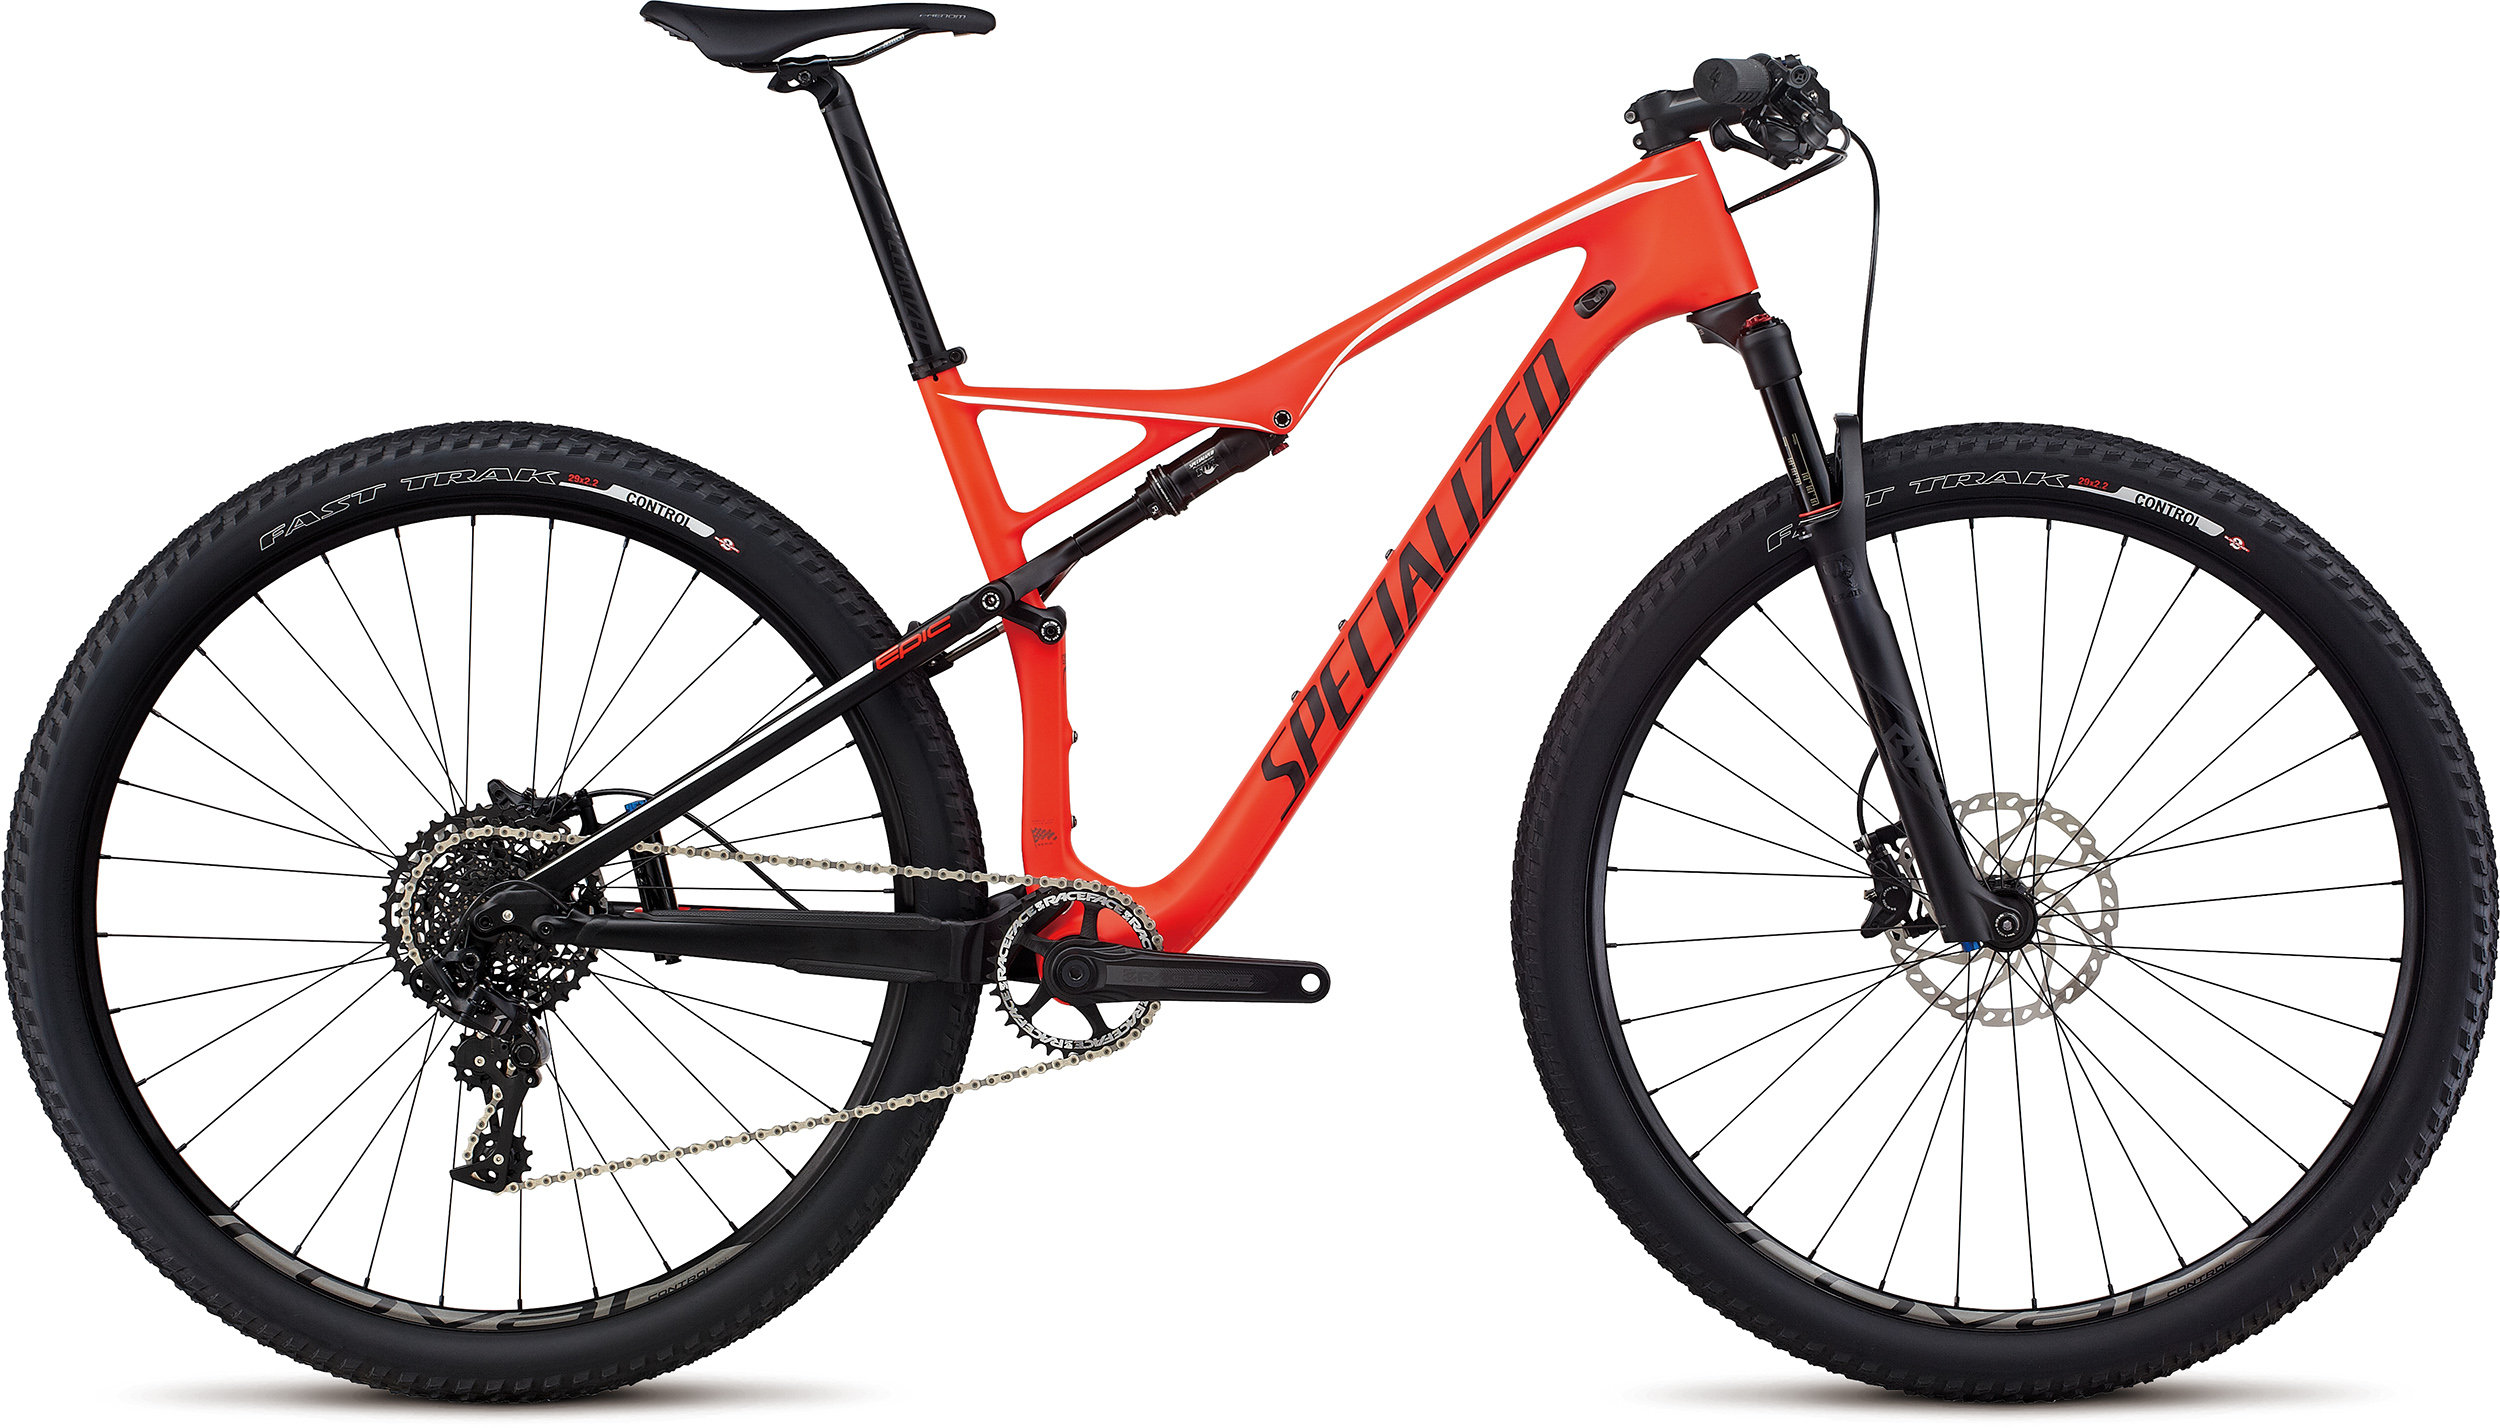 SPECIALIZED EPIC FSR EXPERT CARBON WC 29 RKTRED/BLK/WHT S - Bikedreams & Dustbikes